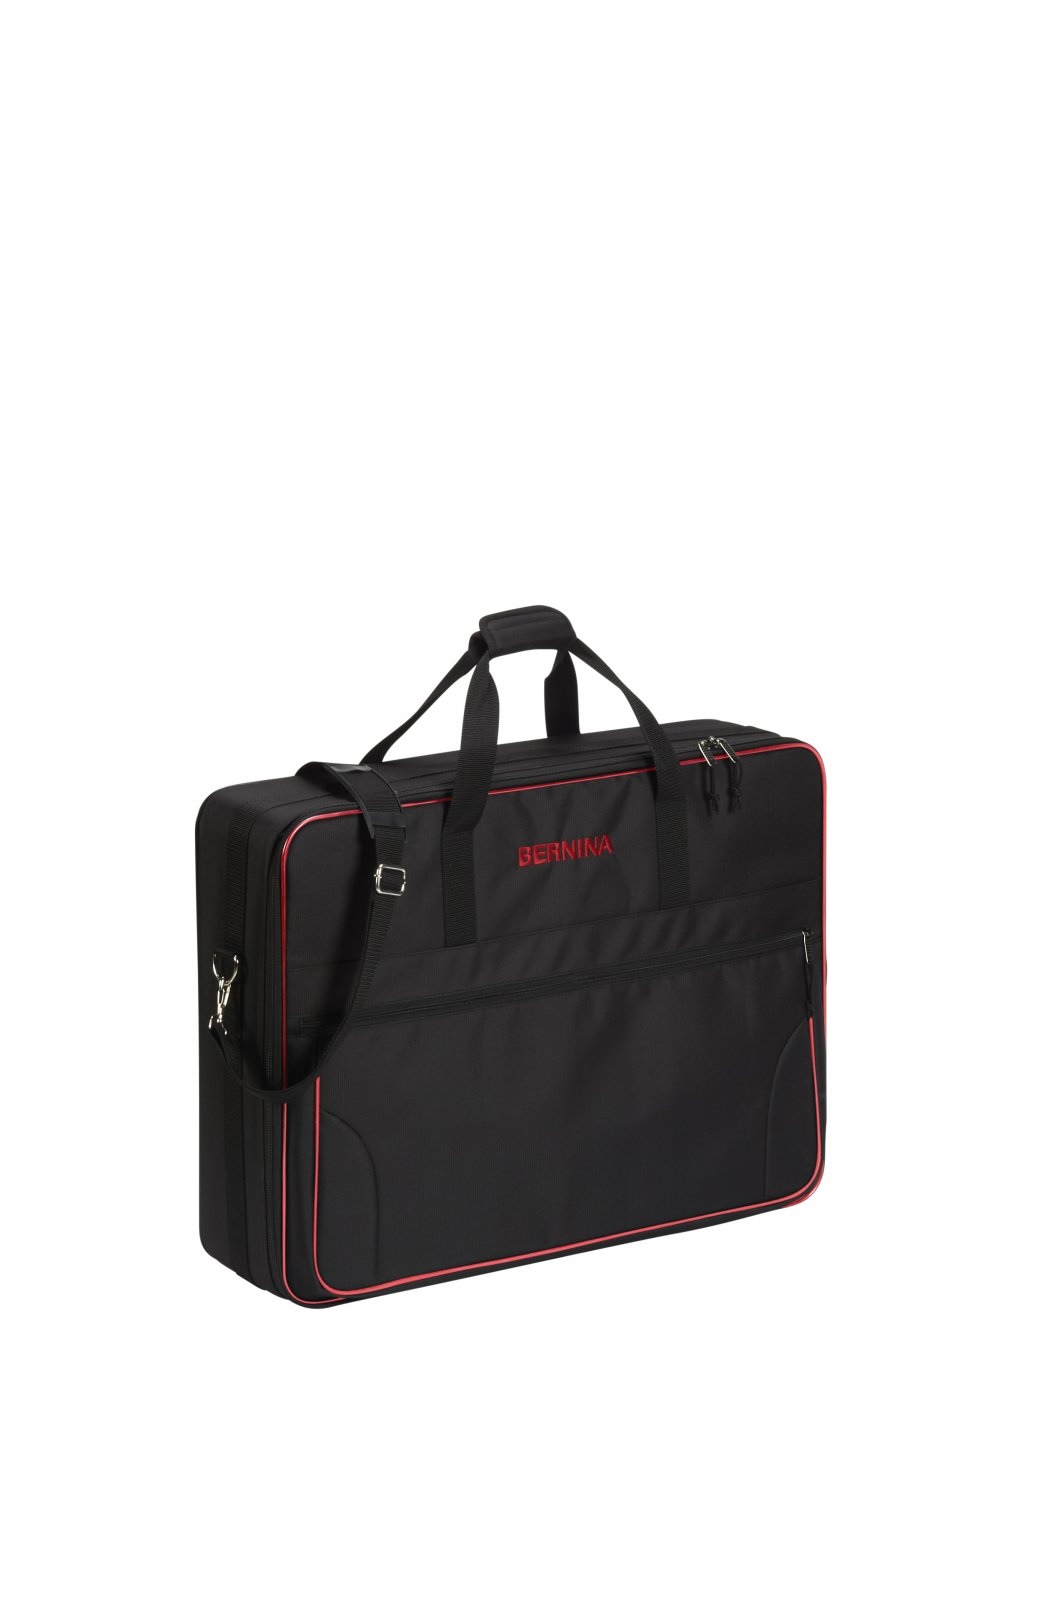 BERNINA 2-6 series emb tote